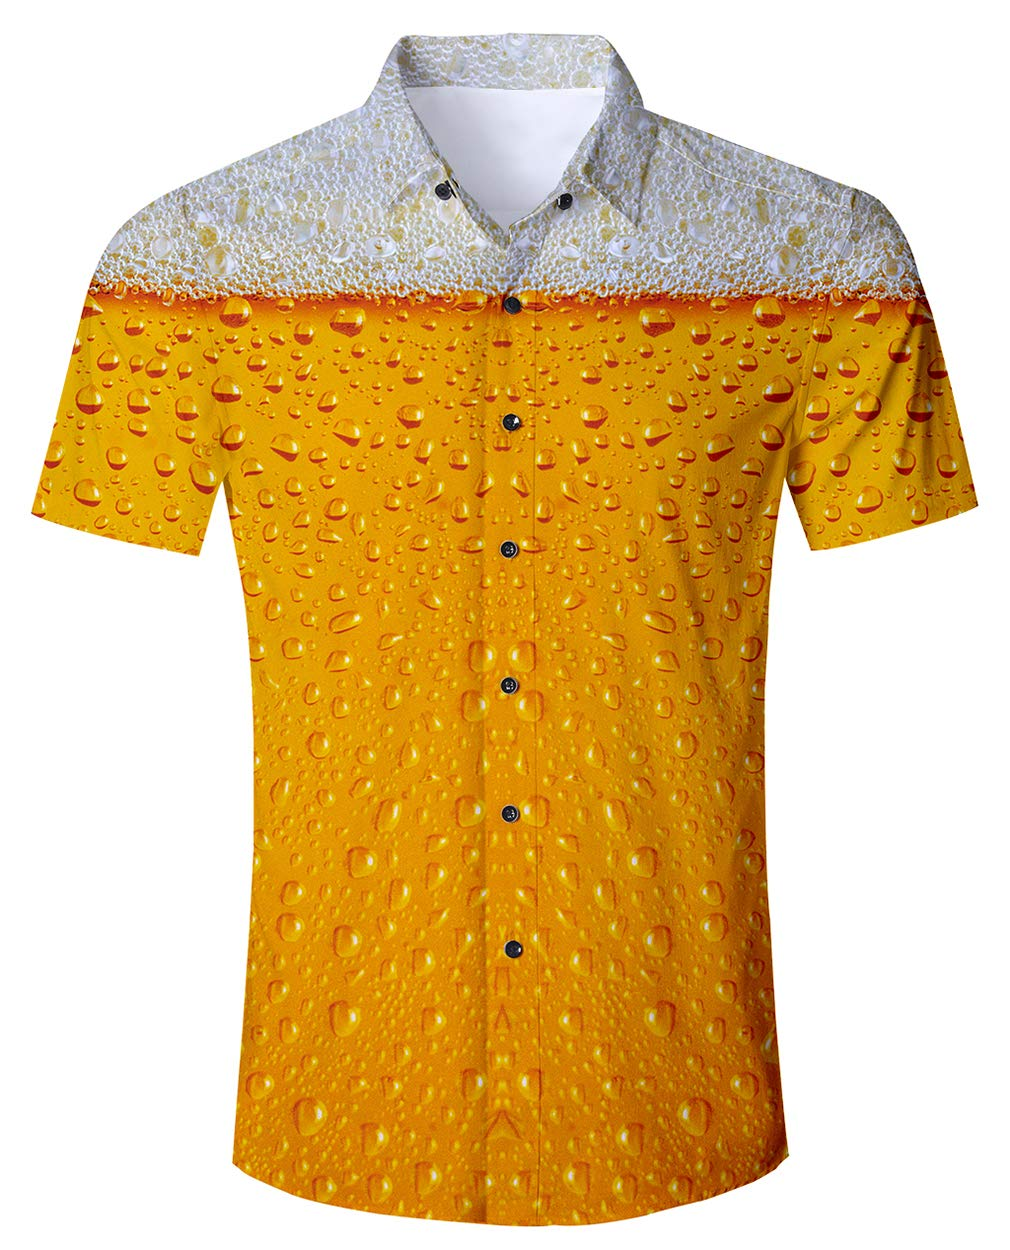 RAISEVERN Men Regular Fit 3D Beer Drop Printed STAG Short Sleeves Button Down Hawaiian Shirts Aloha Yellow